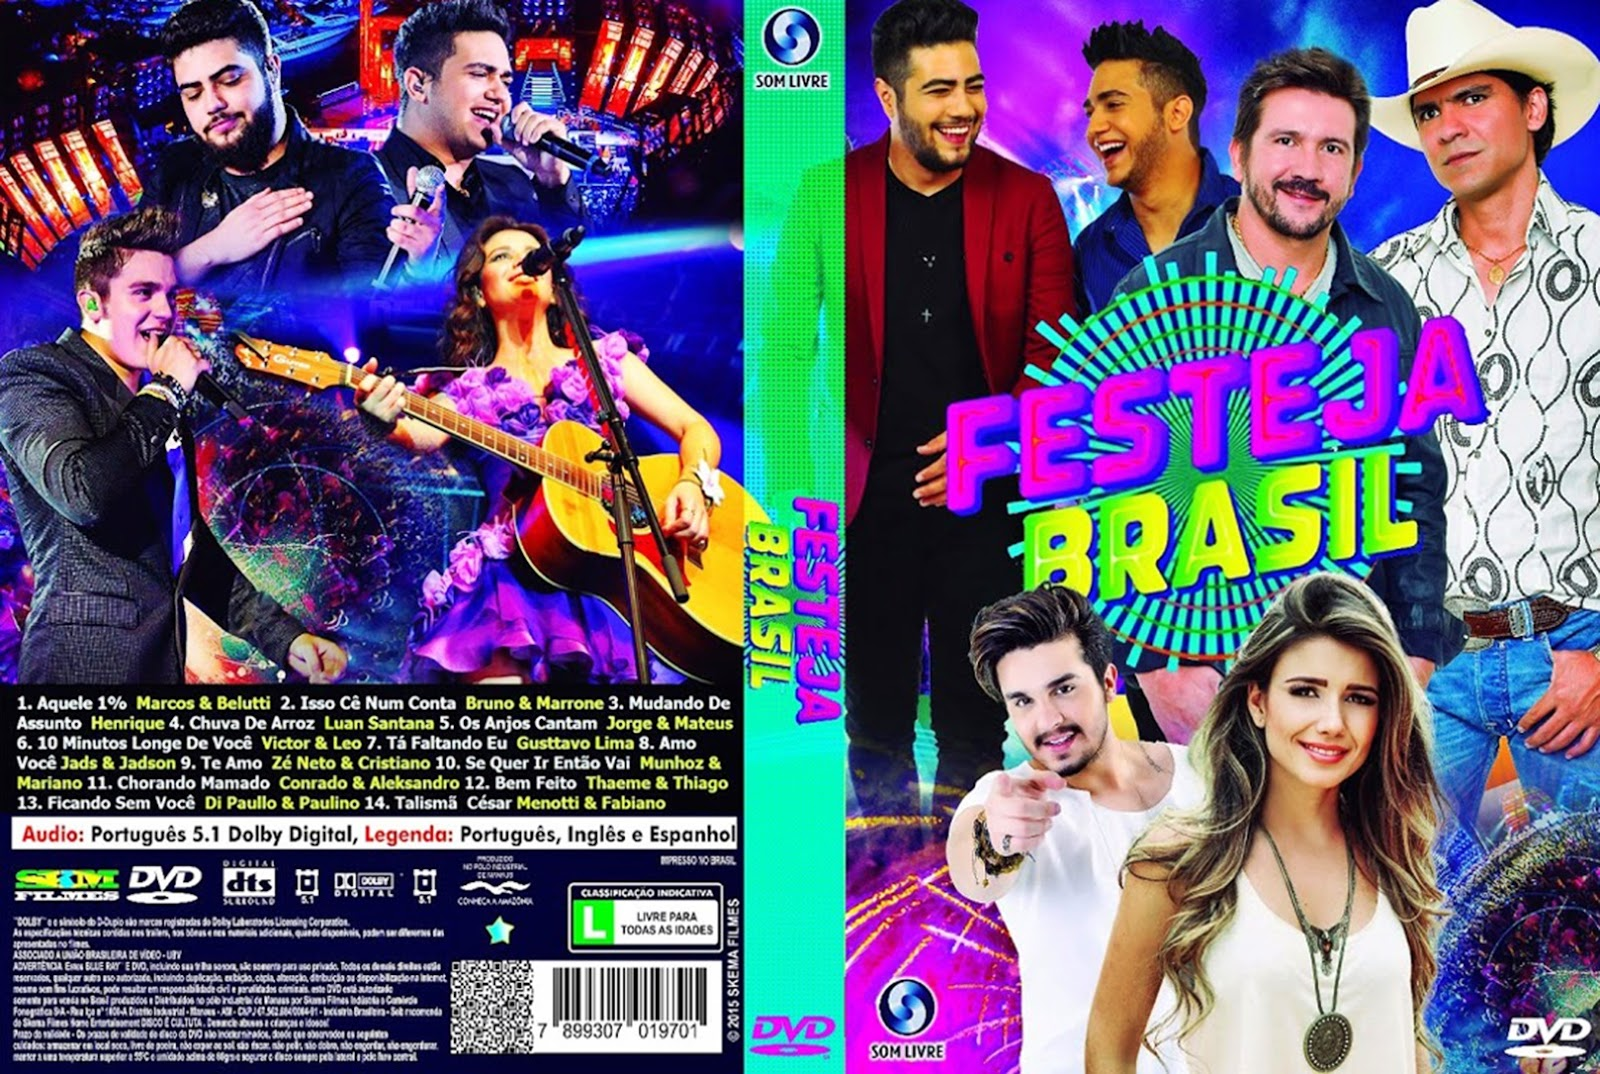 Download Festeja 2016 DVD-R Festeja 2B2016 2BDVD 2B  2BXANDAODOWNLOAD